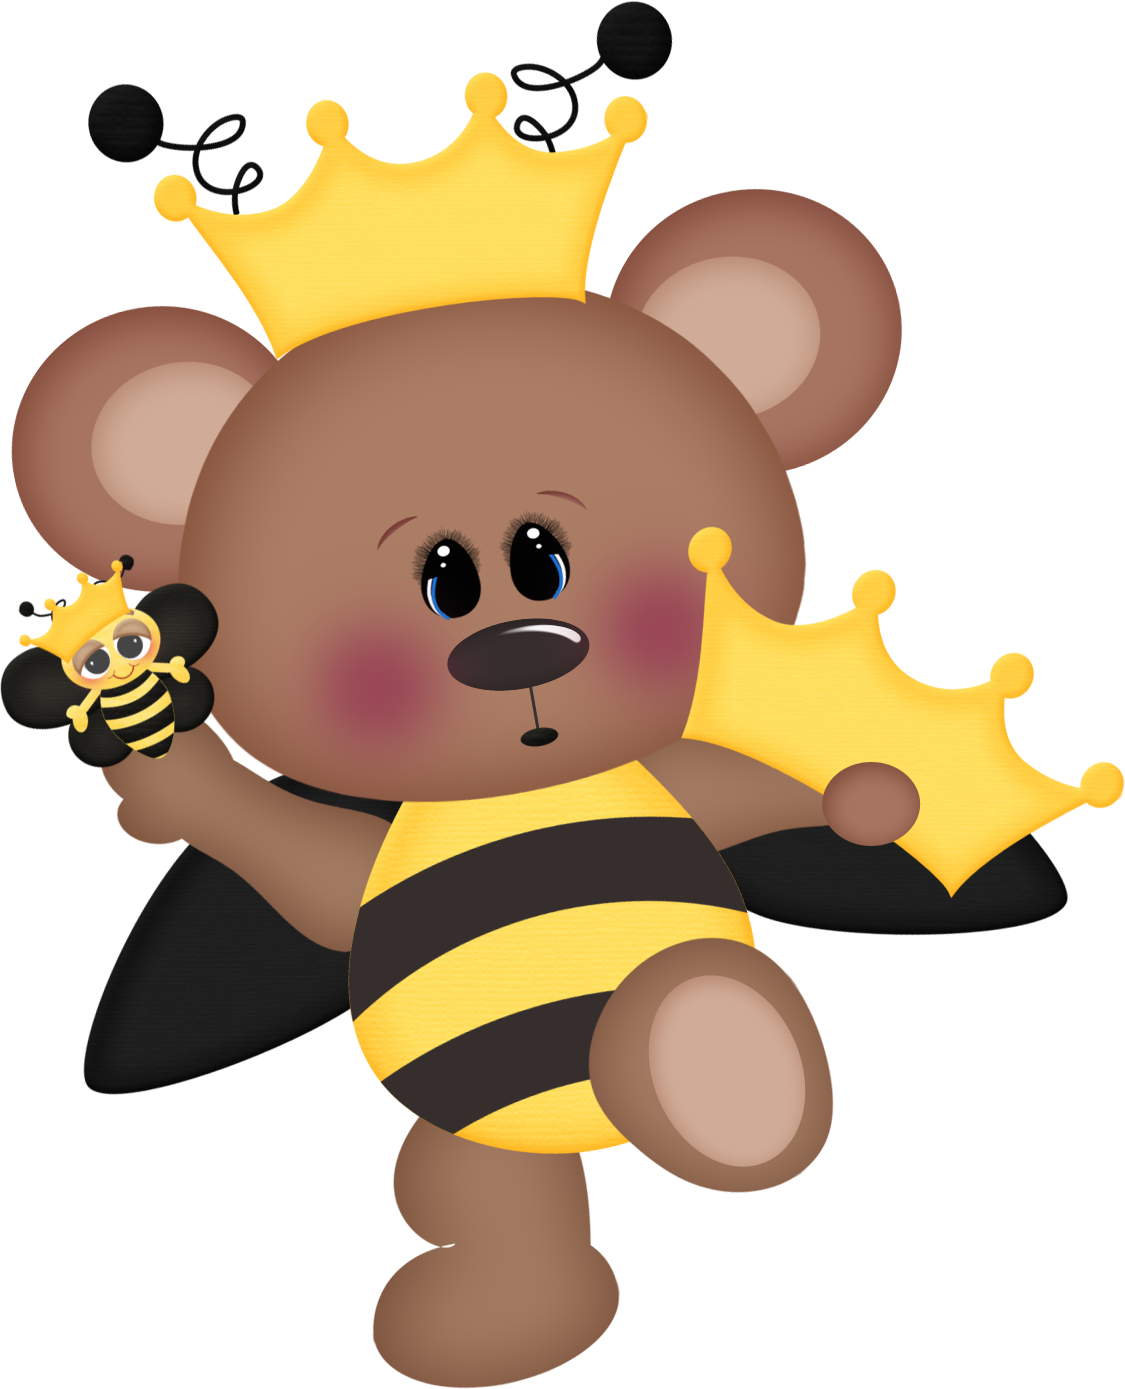 png transparent library Photo by daniellemoraesfalcao minus. Bee clipart country.